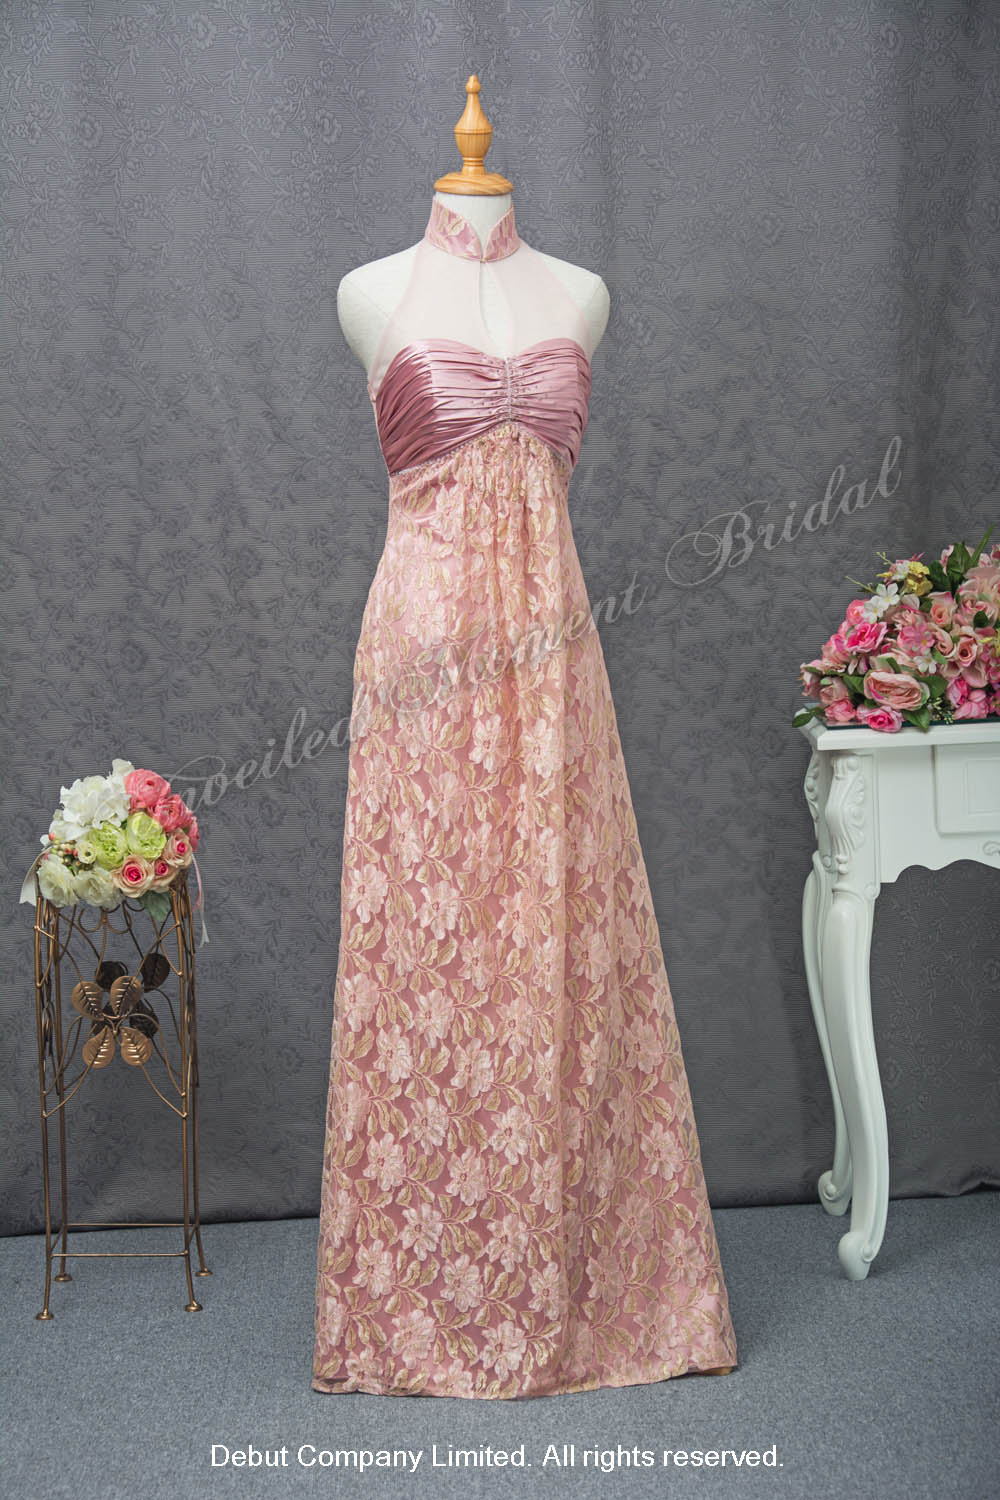 Chinese high collar, halter neckline, empire waistline mother of bride lace evening dress with a ruched bodice. Colour: Matte Pink 高腰企領入膊款蕾絲粉紅色媽咪晚裝裙